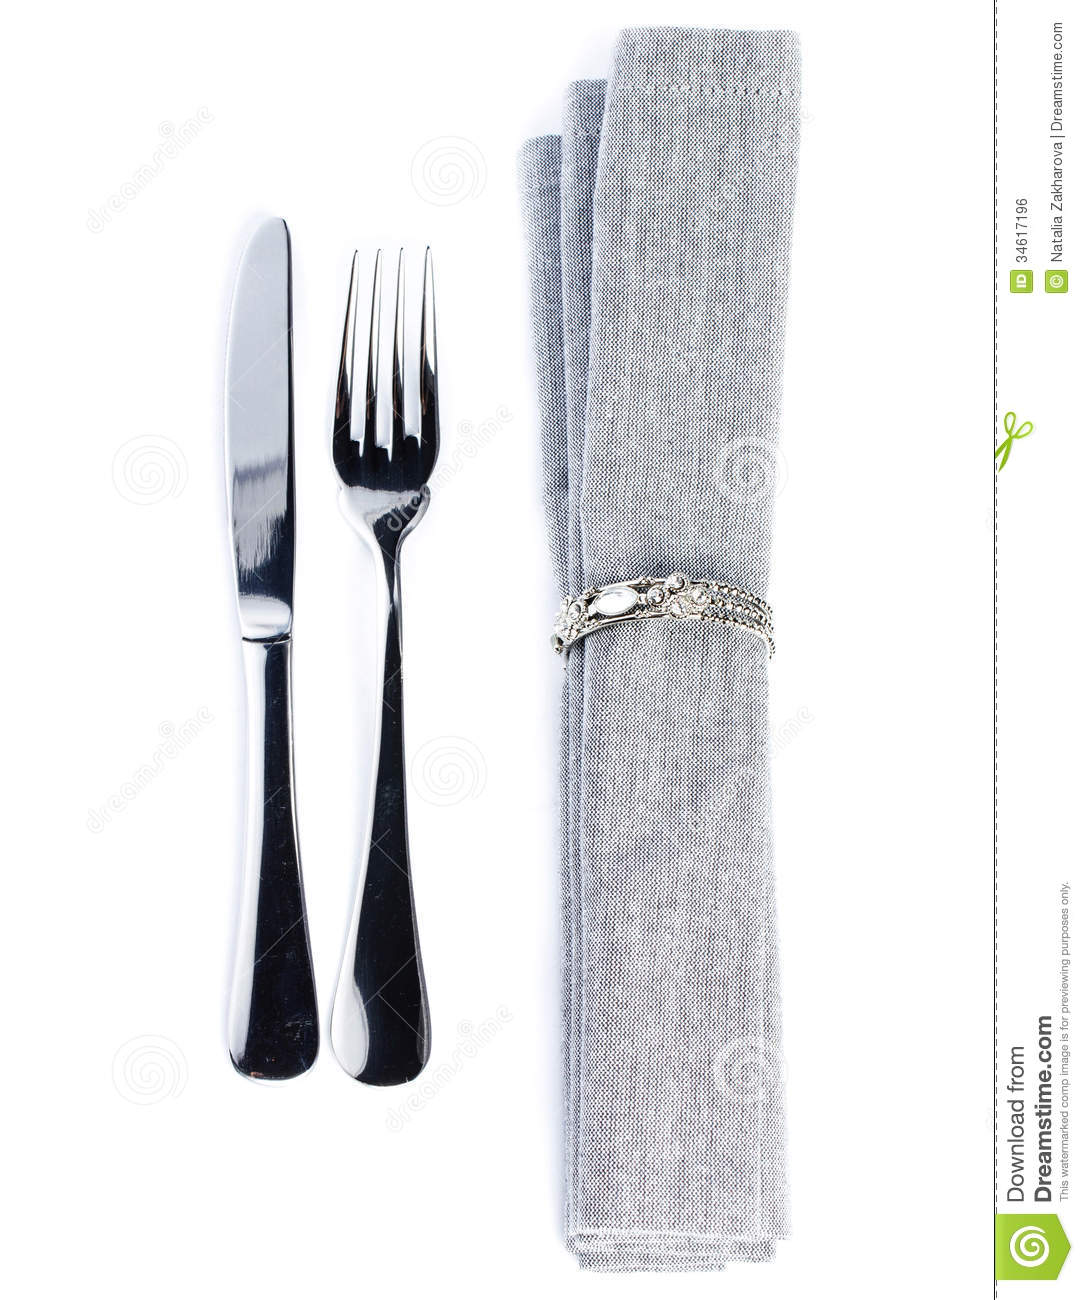 Table Setting Images Pictures amp Photos  CrystalGraphics